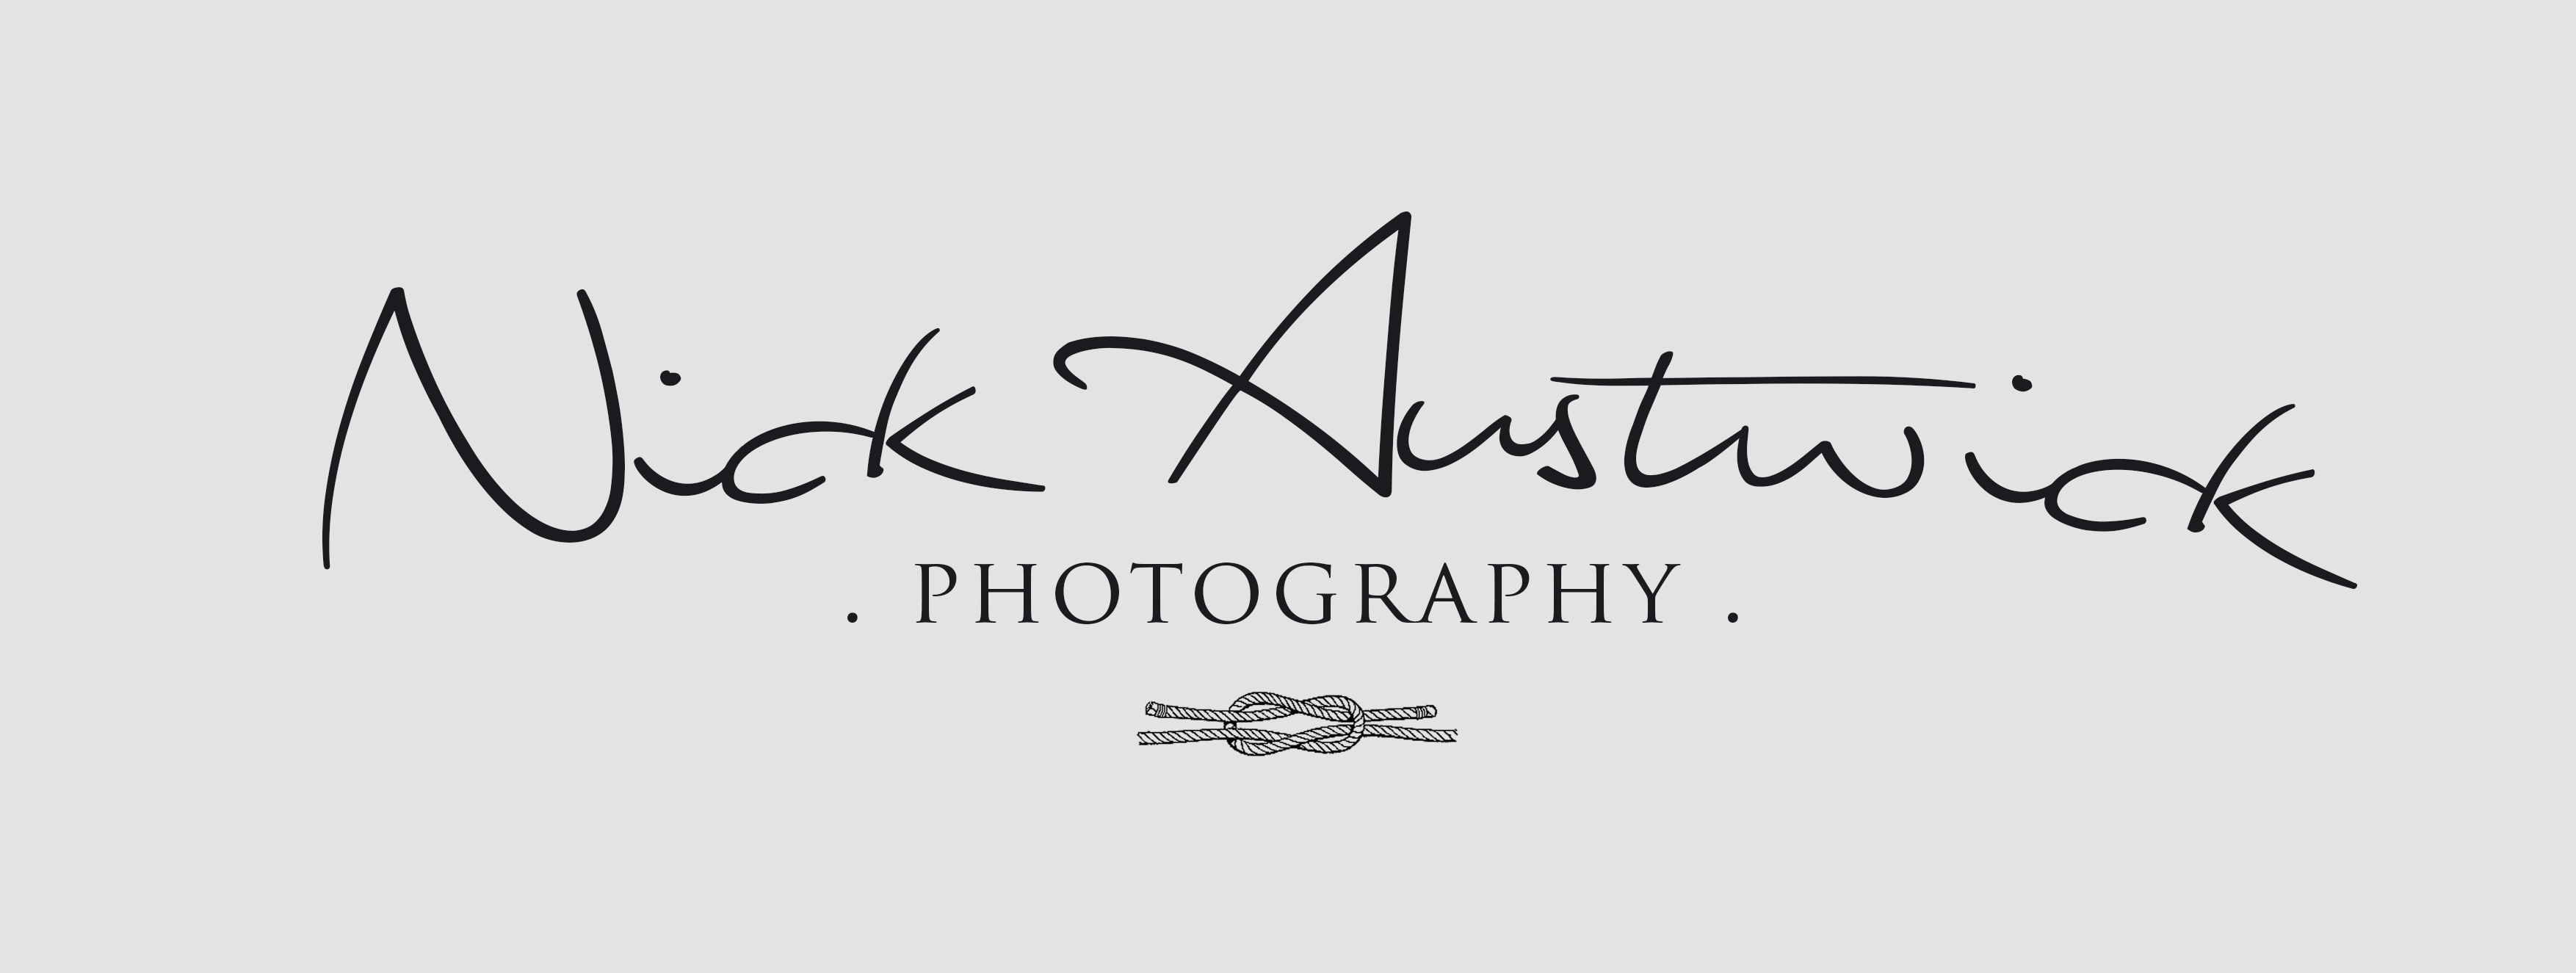 Nick Austwick Photography